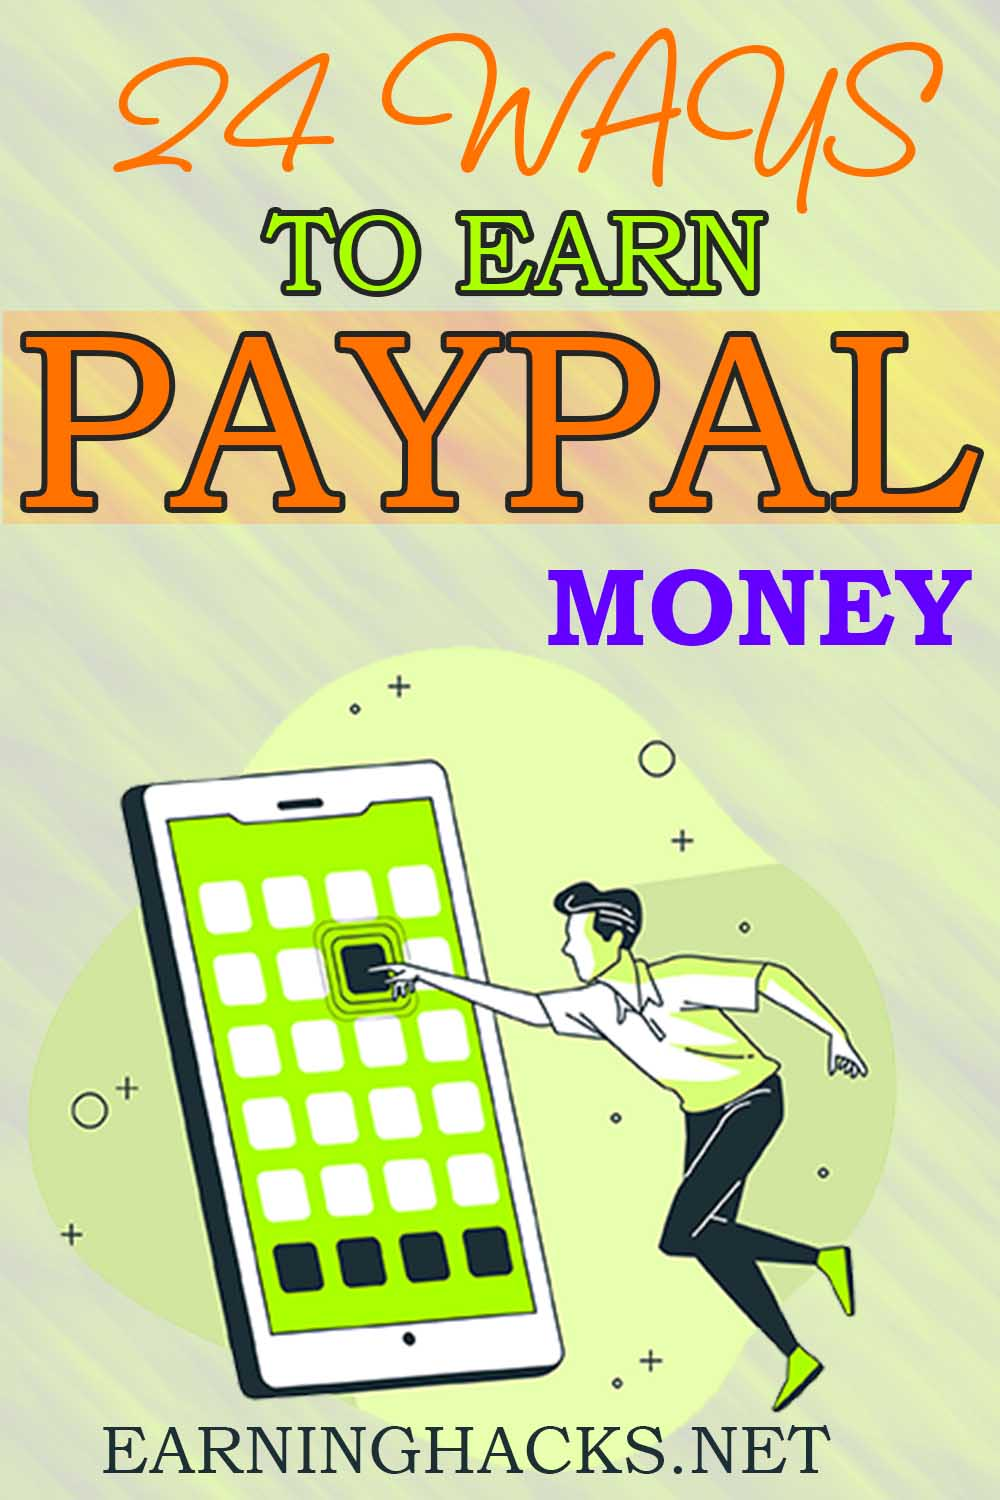 24 Ways To Earn Paypal Money